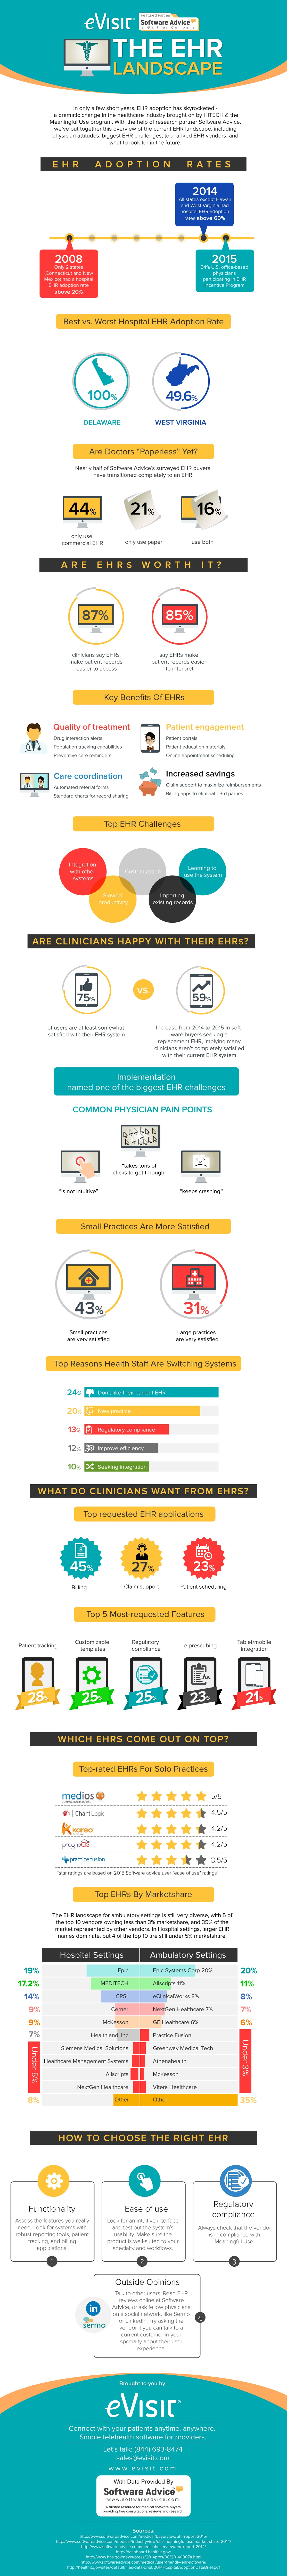 The EHR Landscape Infographic